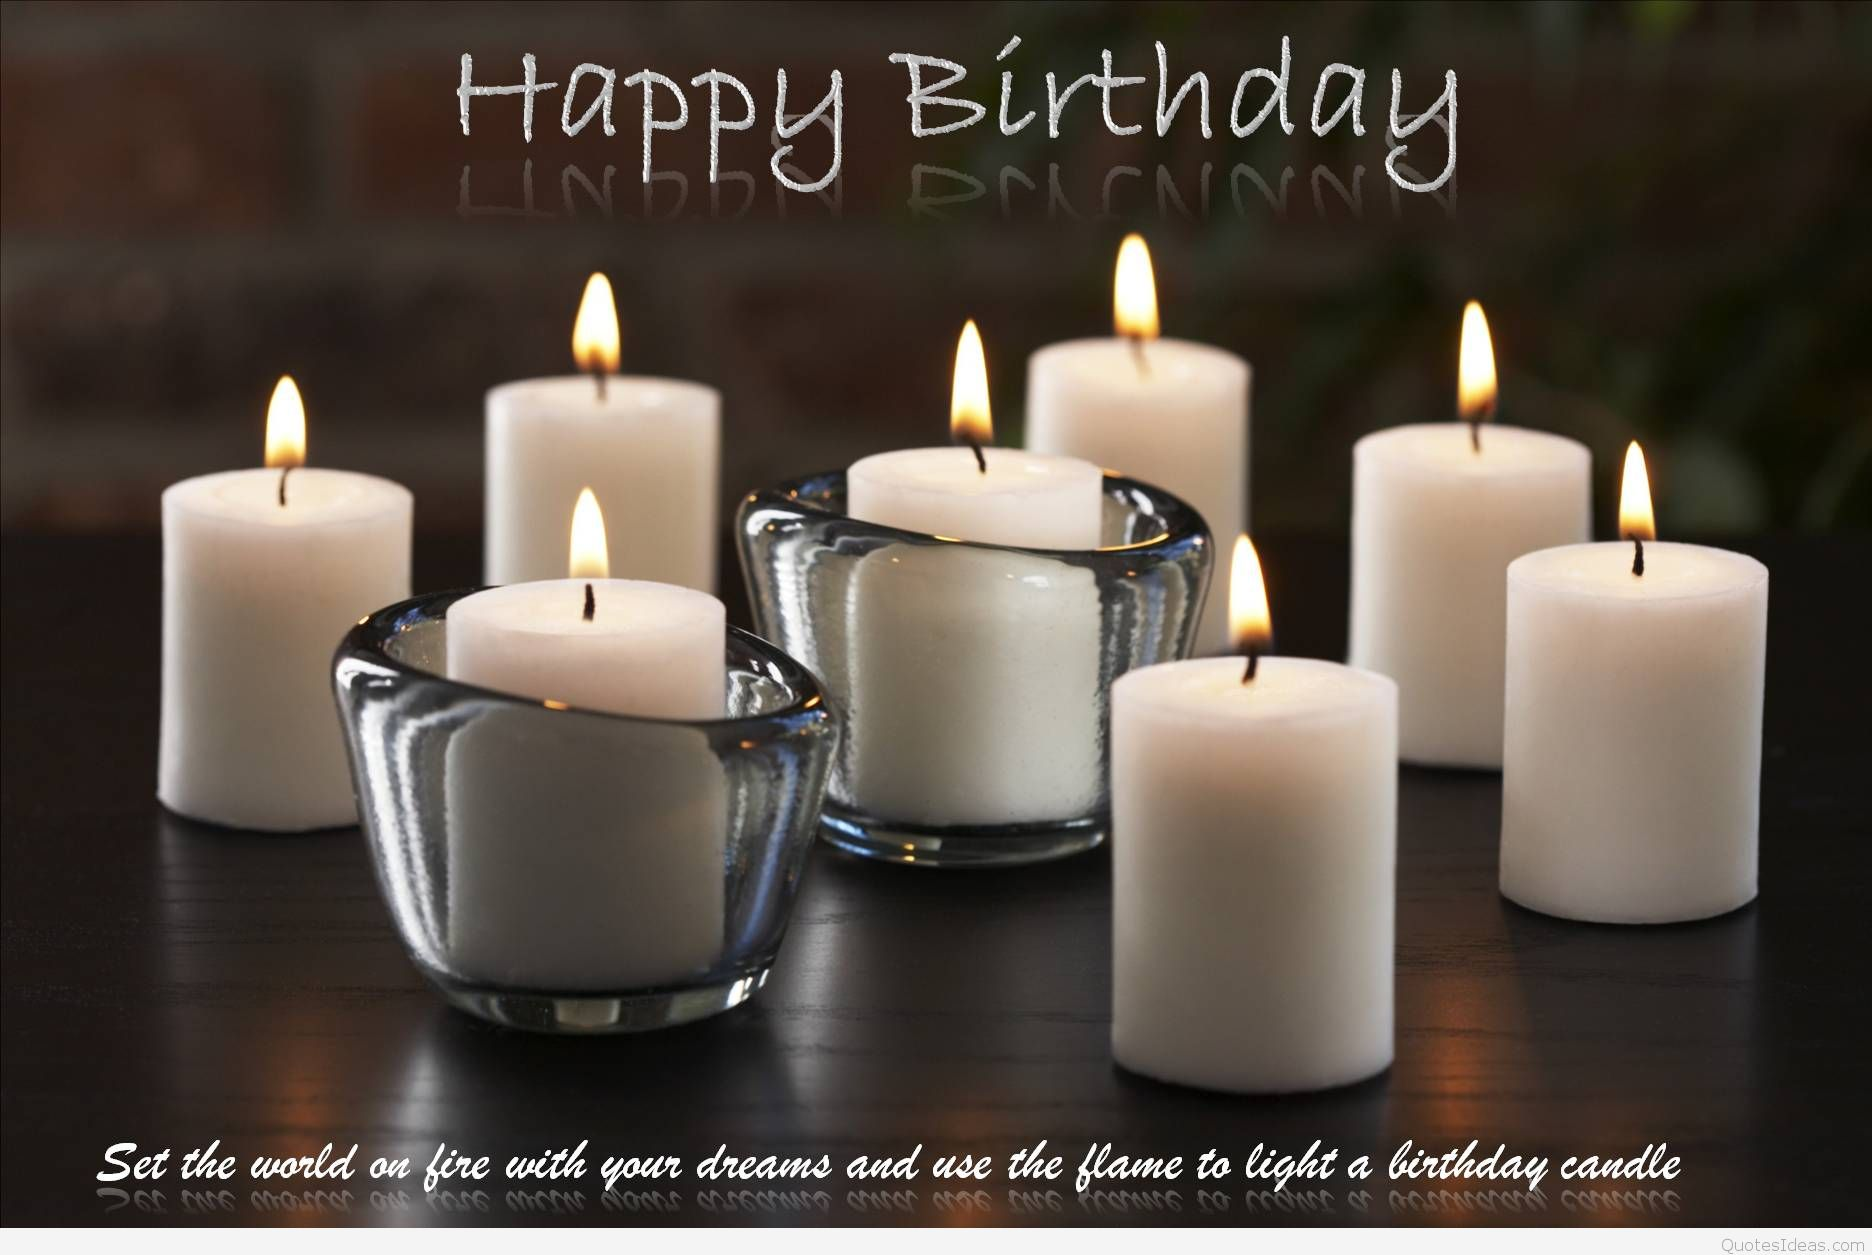 happy birthday friend quotes card ; Happy-Birthday-Friend-Quotes-Wallpaper-7